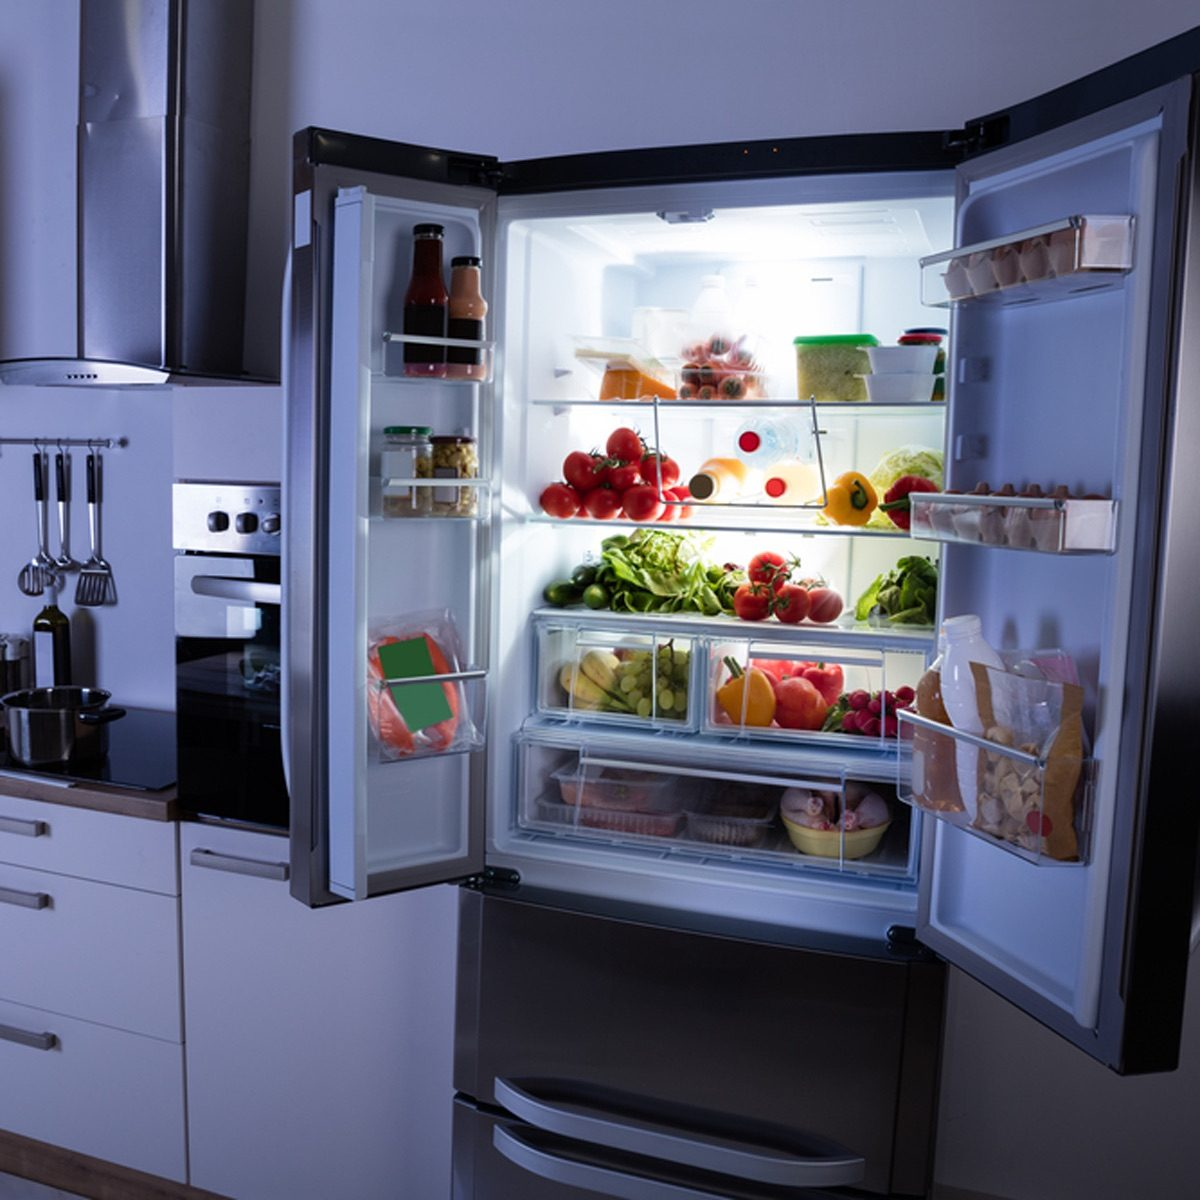 open fridge at night